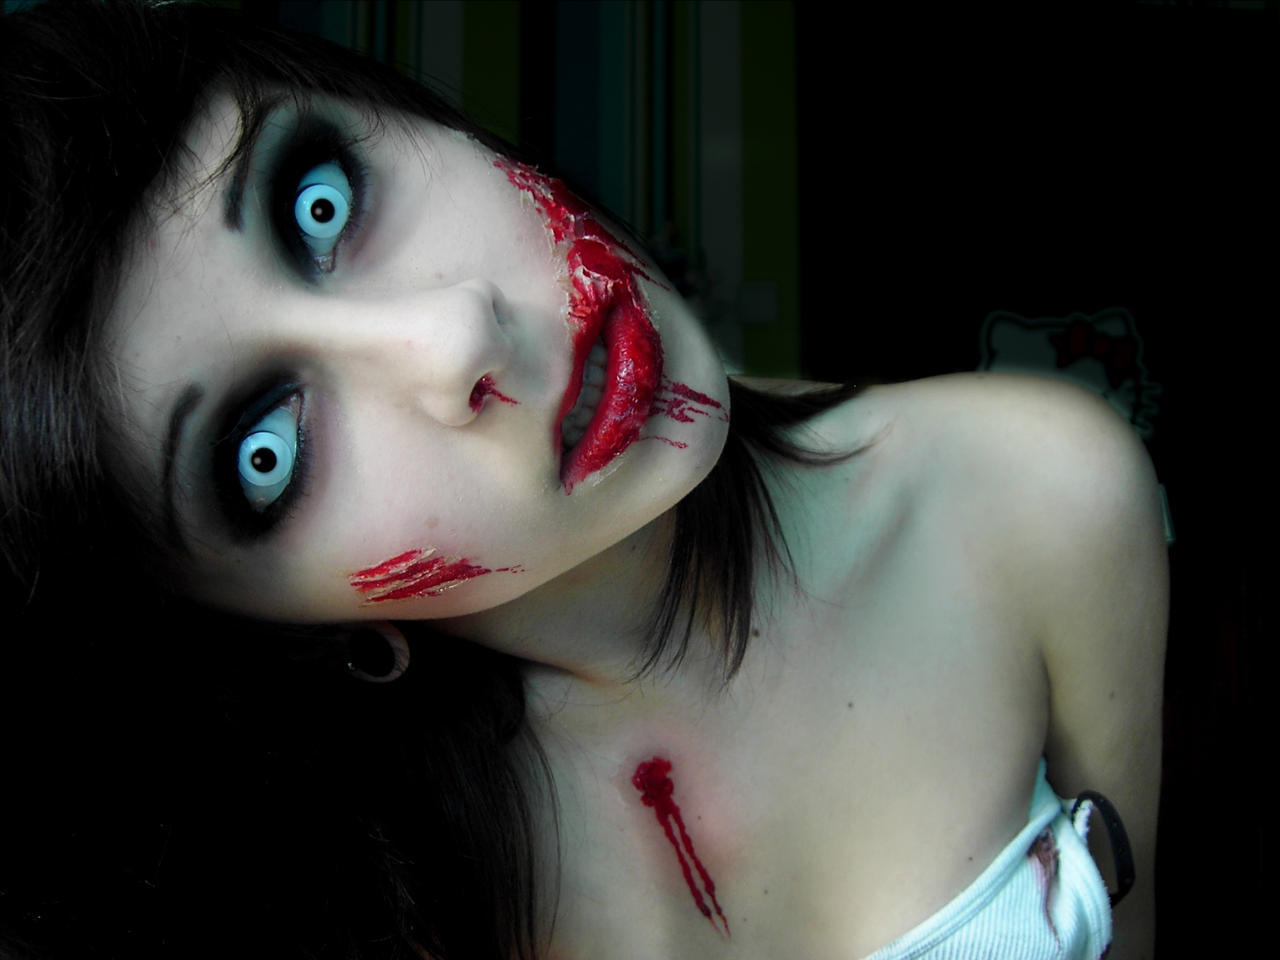 ... 2012 2015 mariemystery zombie girl make up by me tutorial will be made